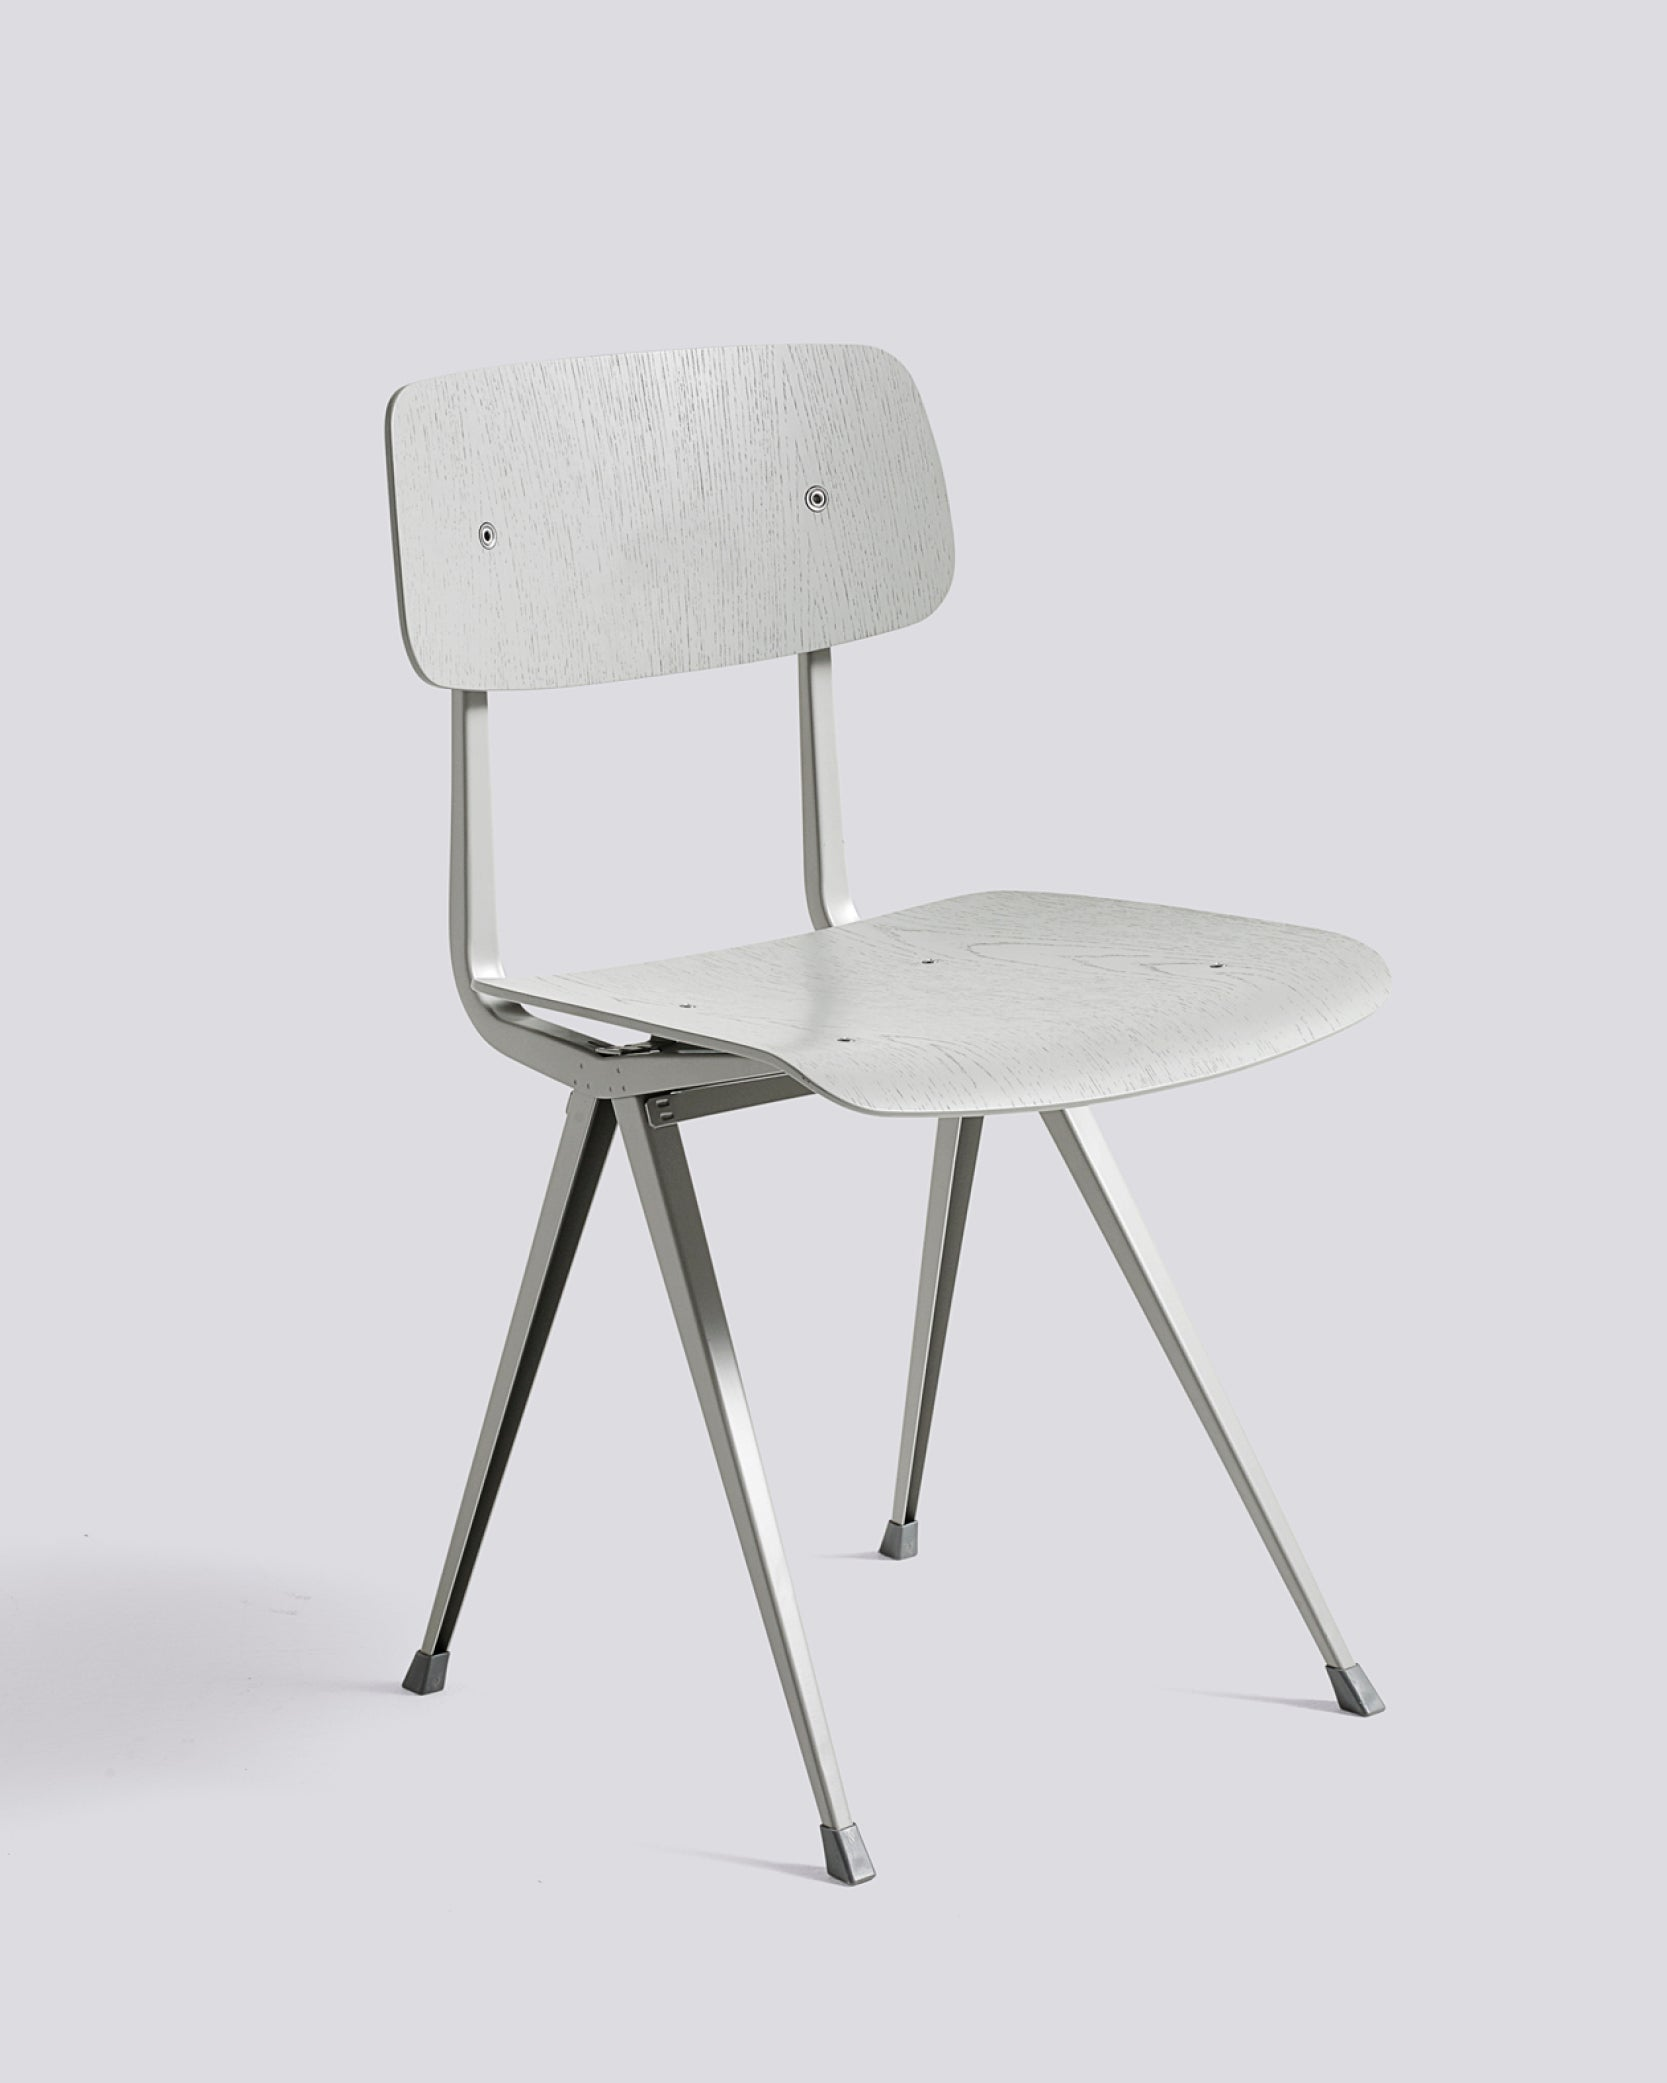 Silla Result | Result chair